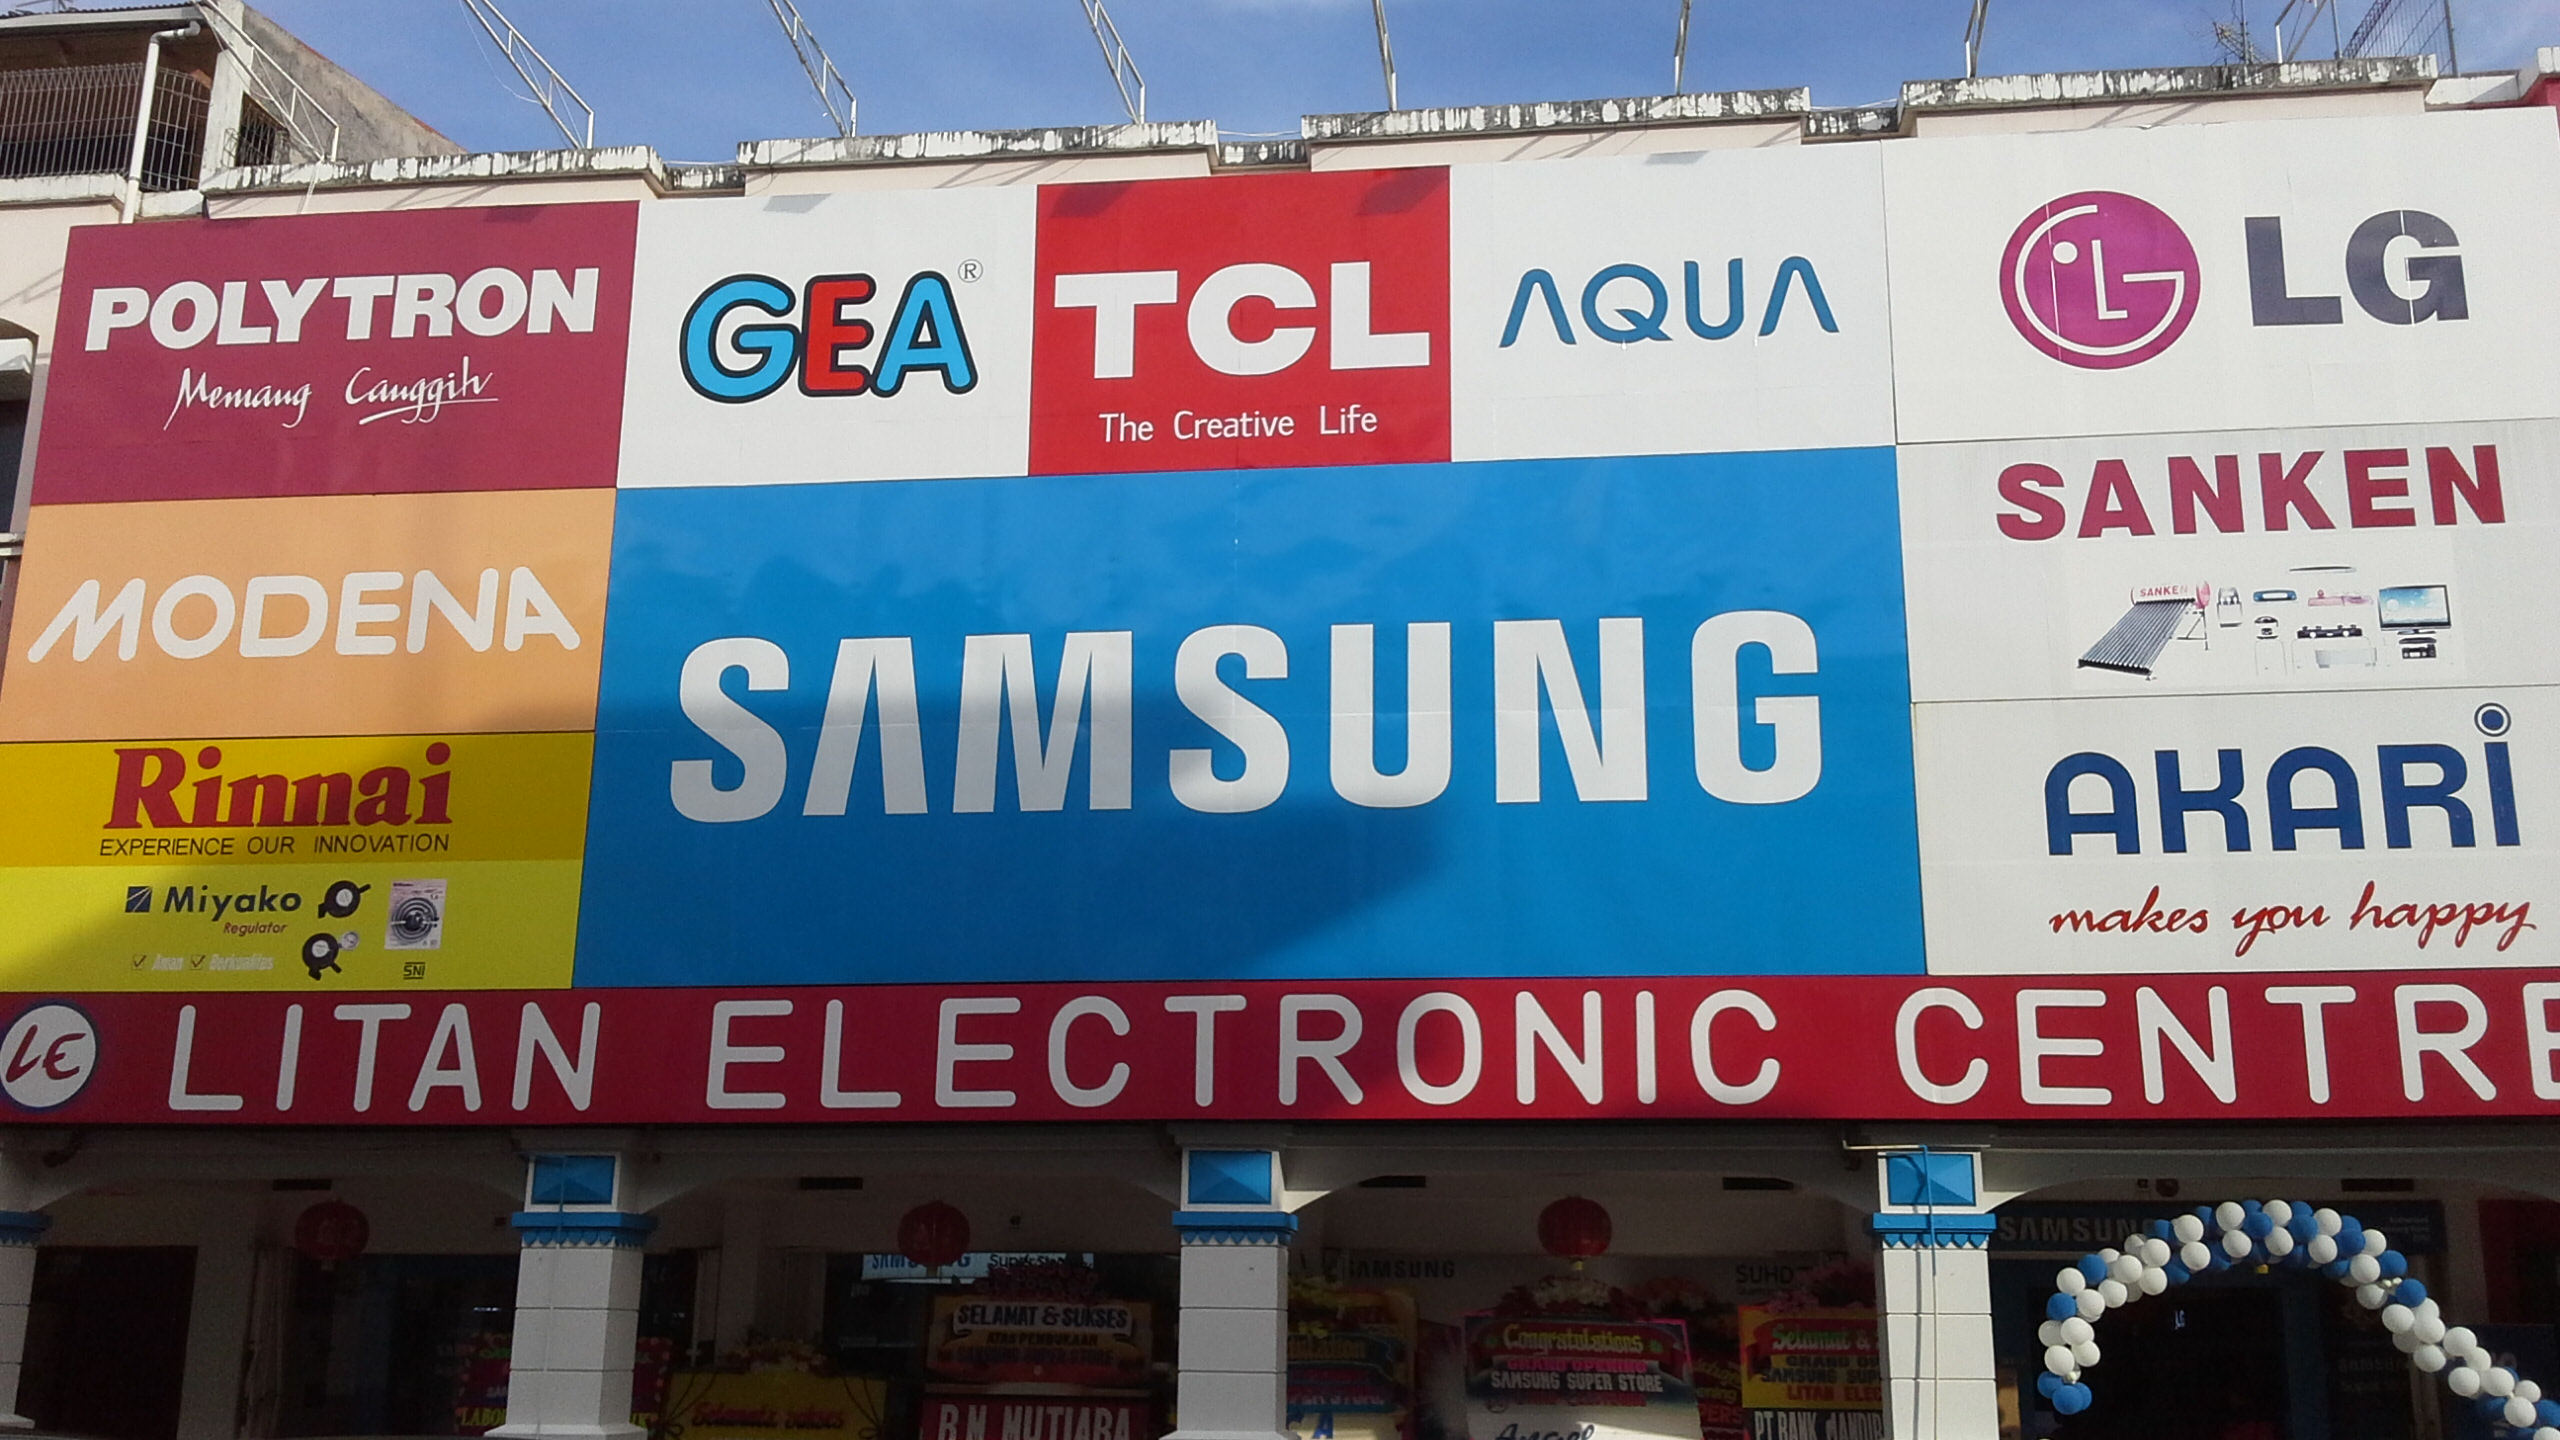 LITAN  ELECTRONIC  : Grand Opening Samsung Superstore